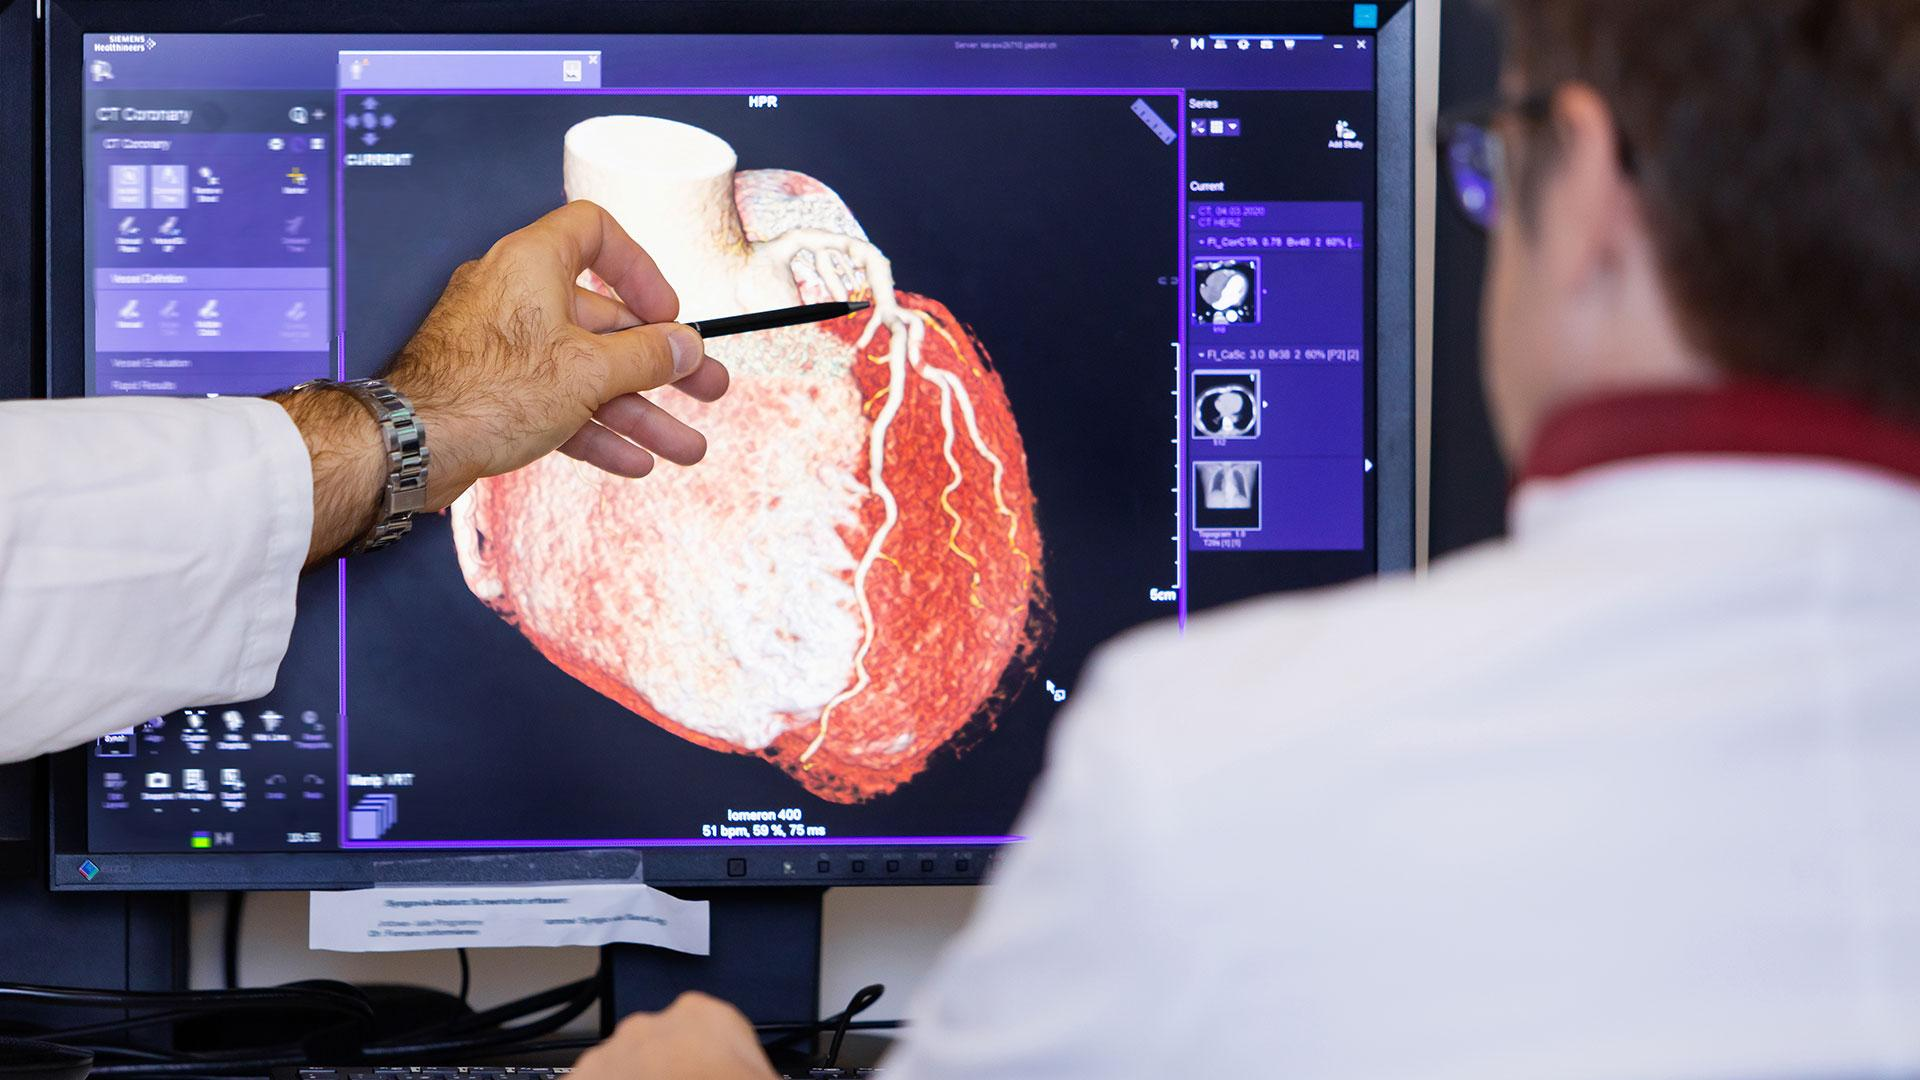 Jürgen Fornaro, MD looks at a heart CT scan on a screen.